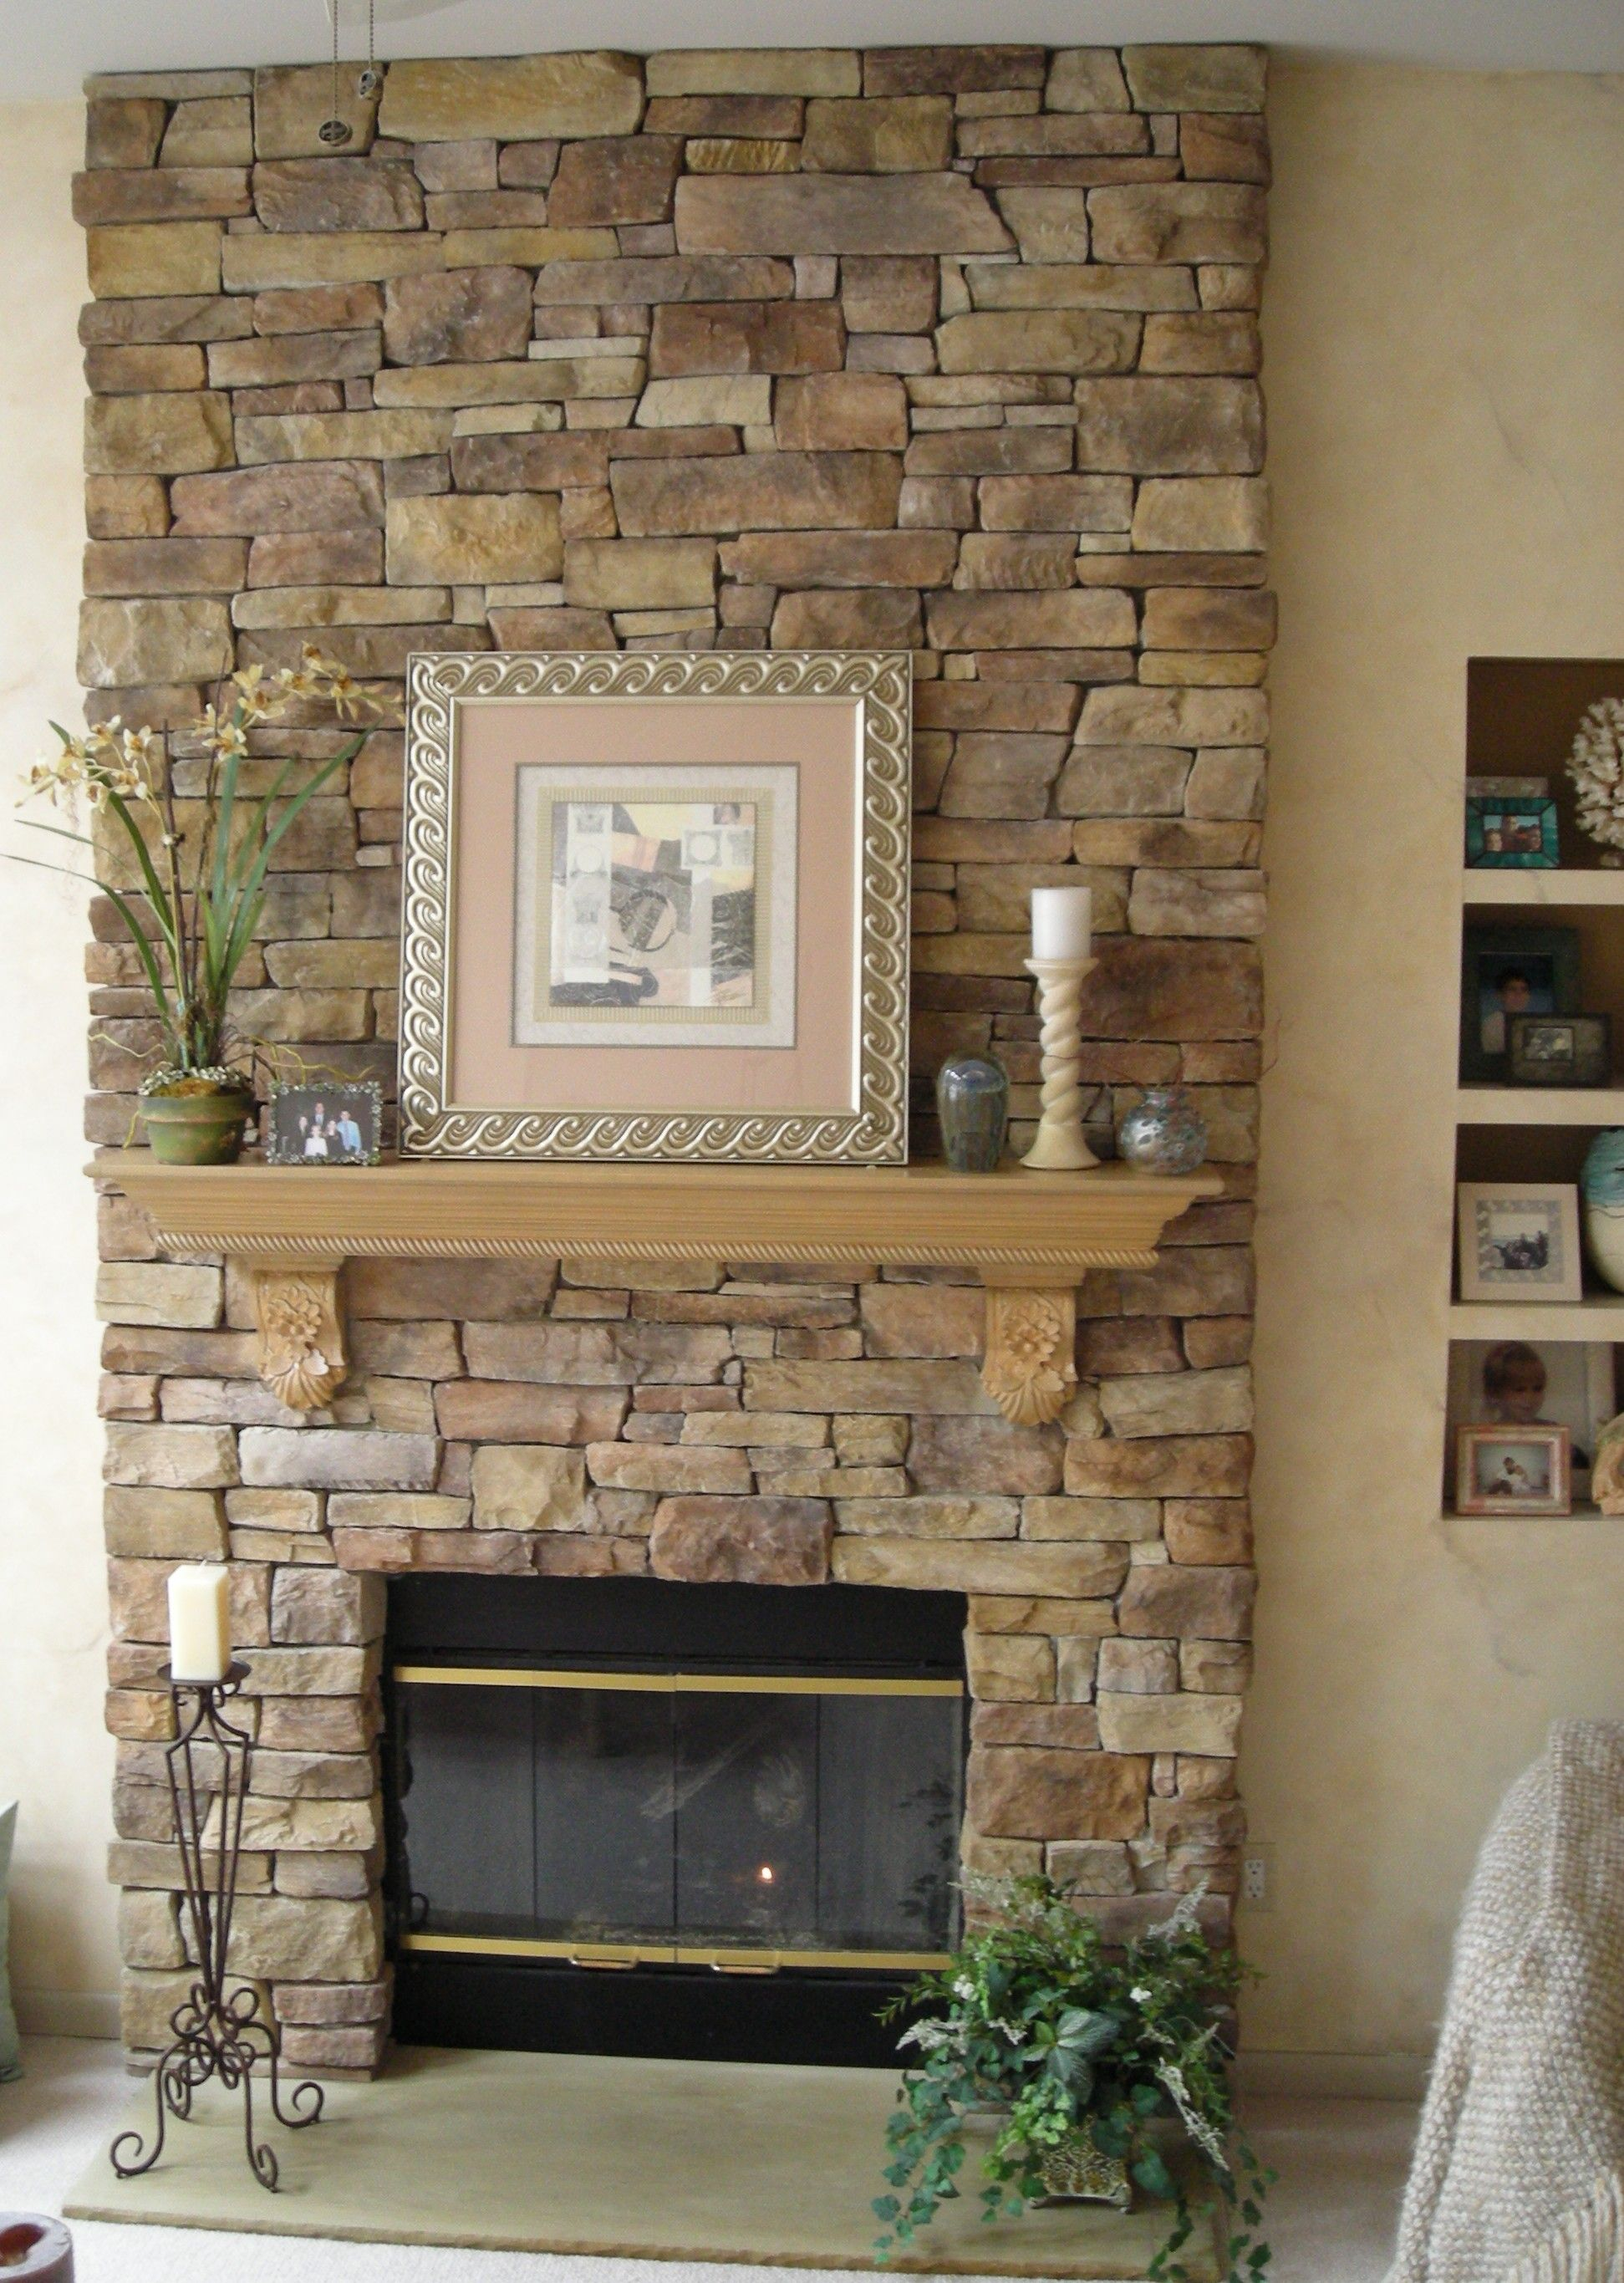 Interior Stone Fireplace Specializes In Faux Stone Veneer And Natural Stone  Design. Description From Homedesignez.com. I Searched For This On Bing.com/  ...